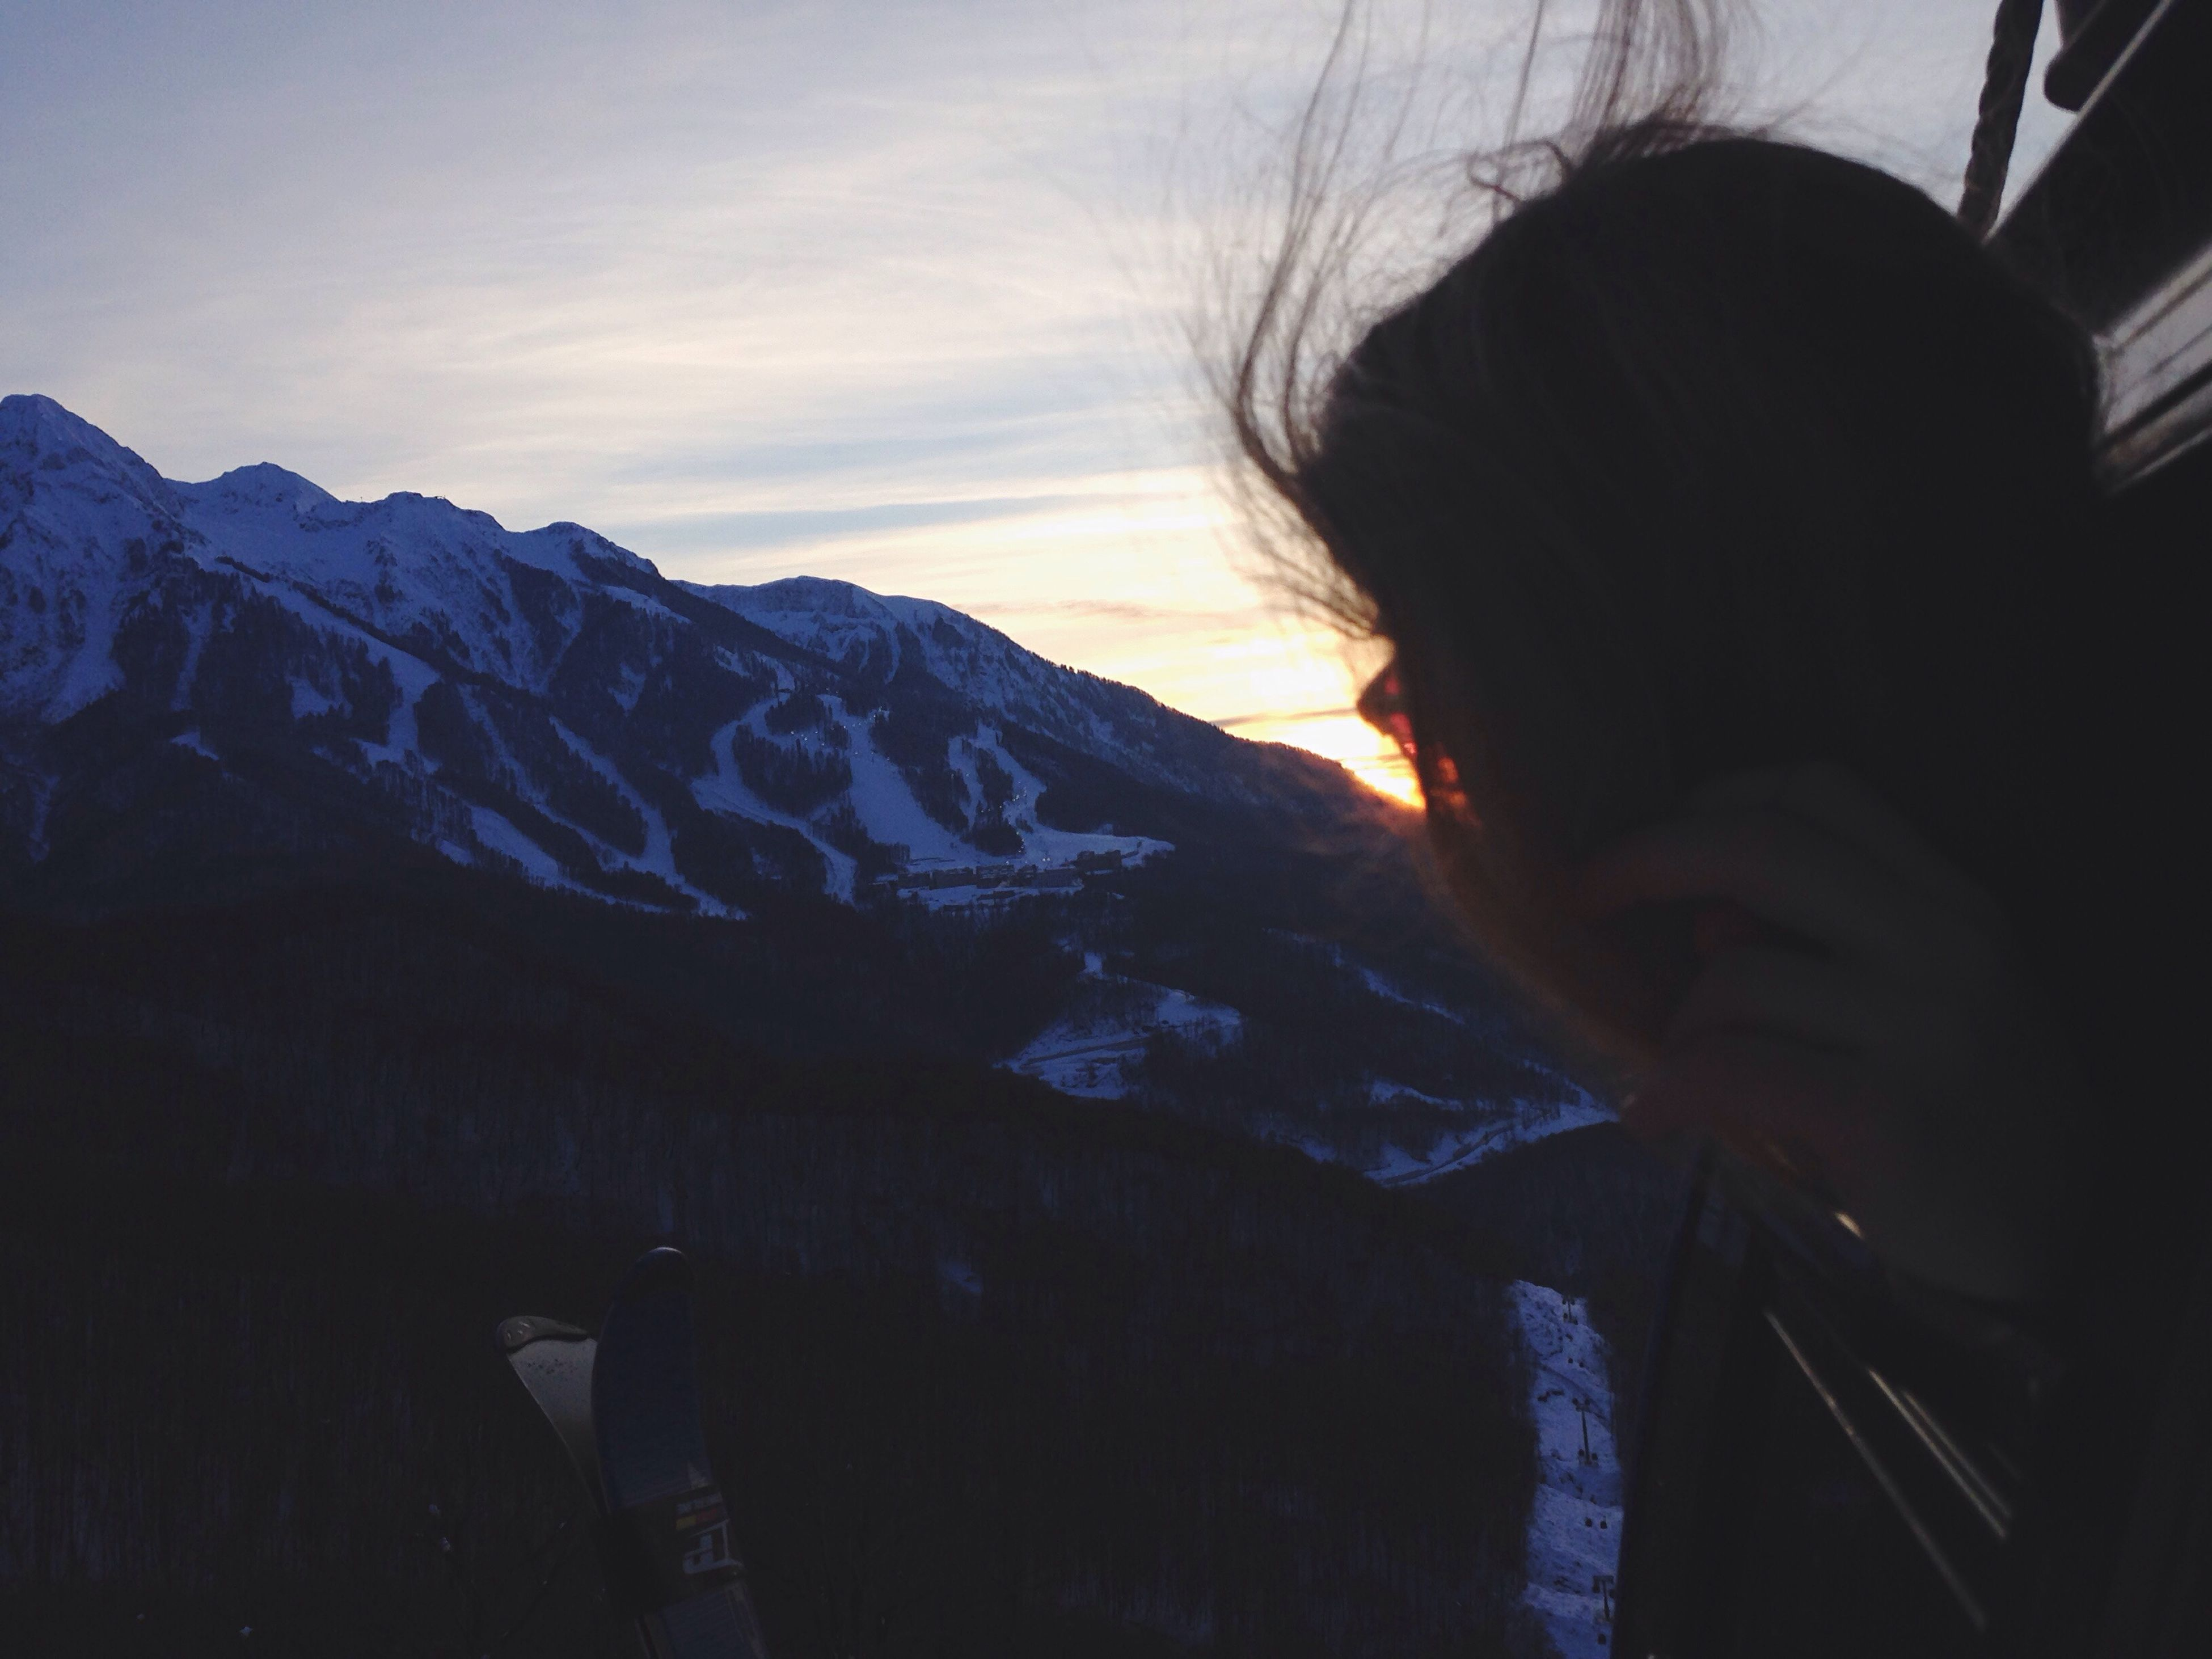 mountain, lifestyles, mountain range, sky, leisure activity, winter, tranquility, beauty in nature, tranquil scene, rear view, nature, scenics, cold temperature, long hair, person, weather, day, snow